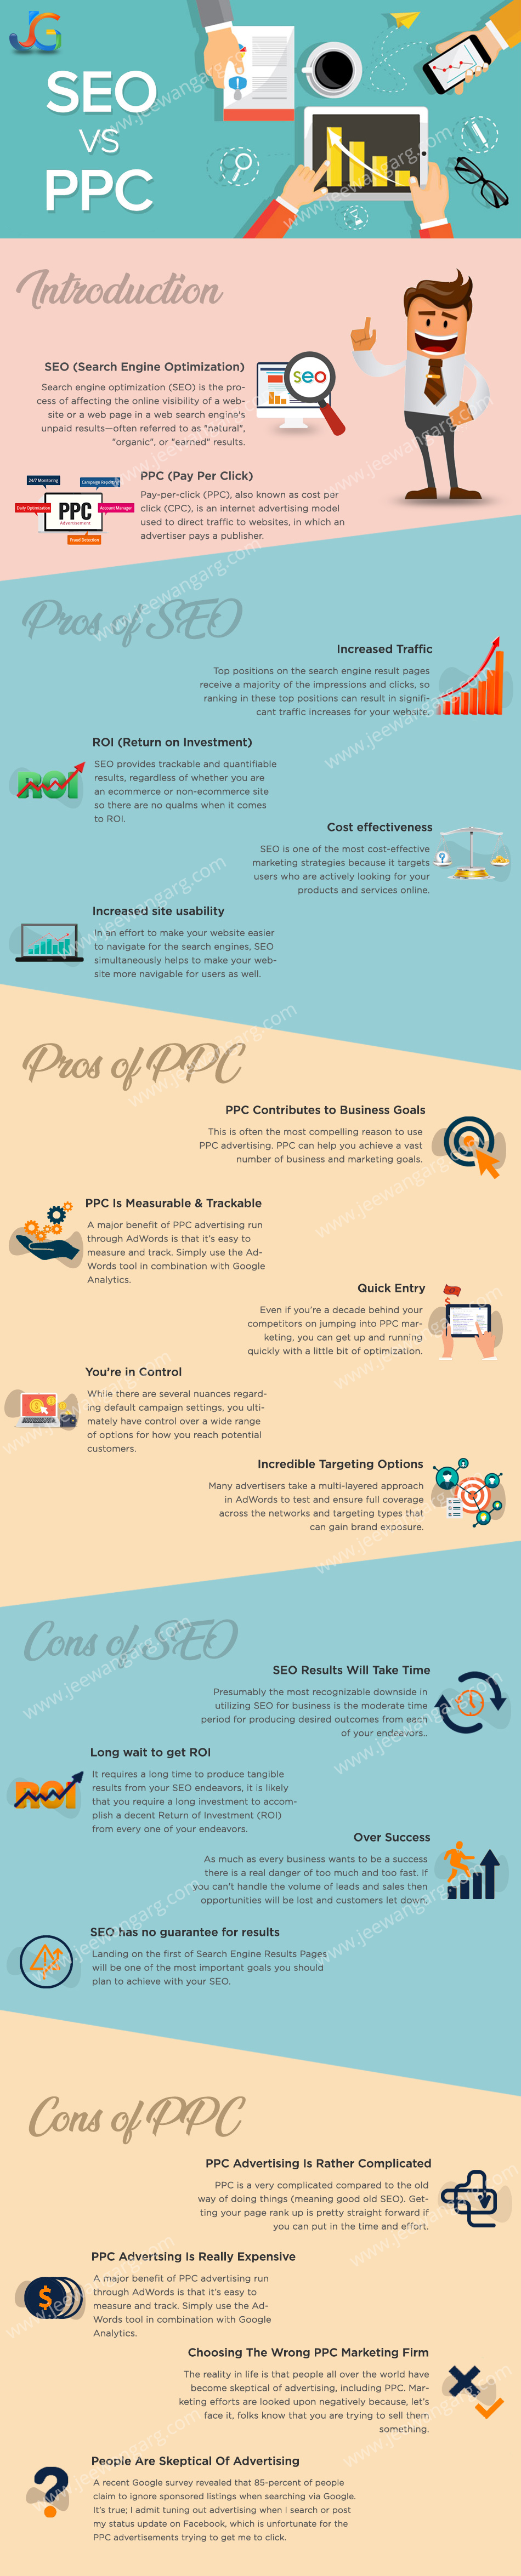 SEO Vs PPC – The Pros and Cons